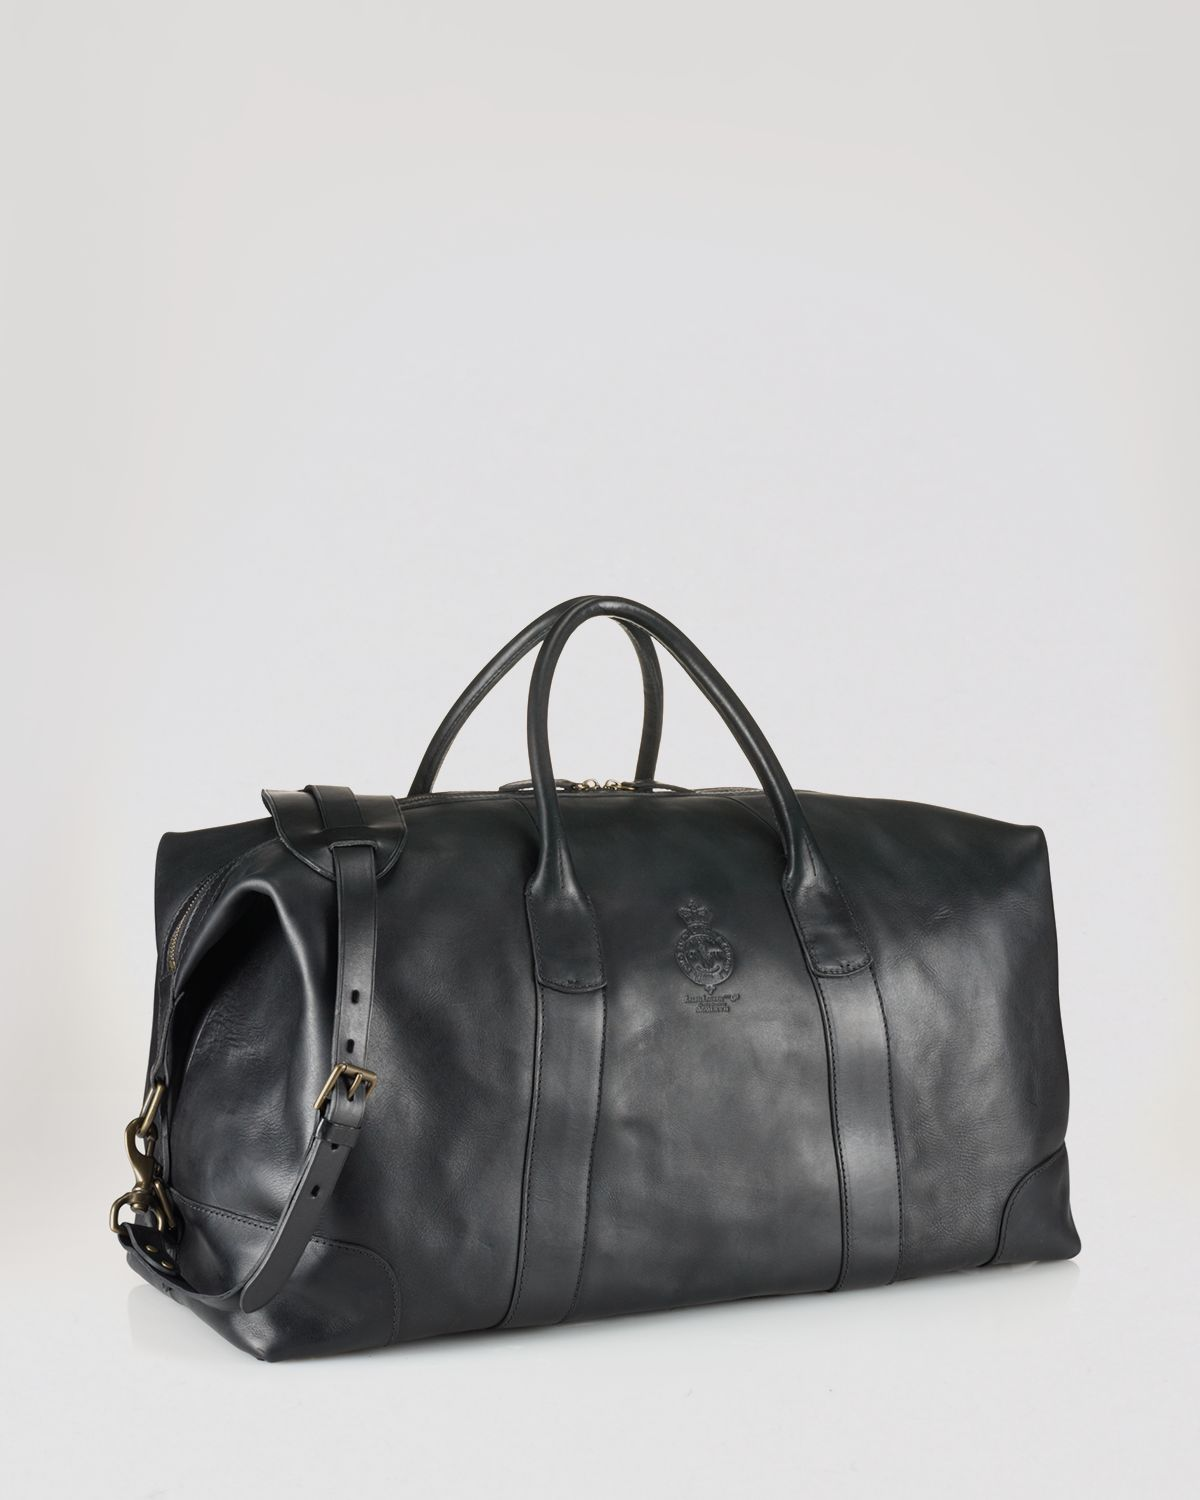 fb16bba2929 Lyst - Ralph Lauren Polo Leather Duffel Bag in Black for Men